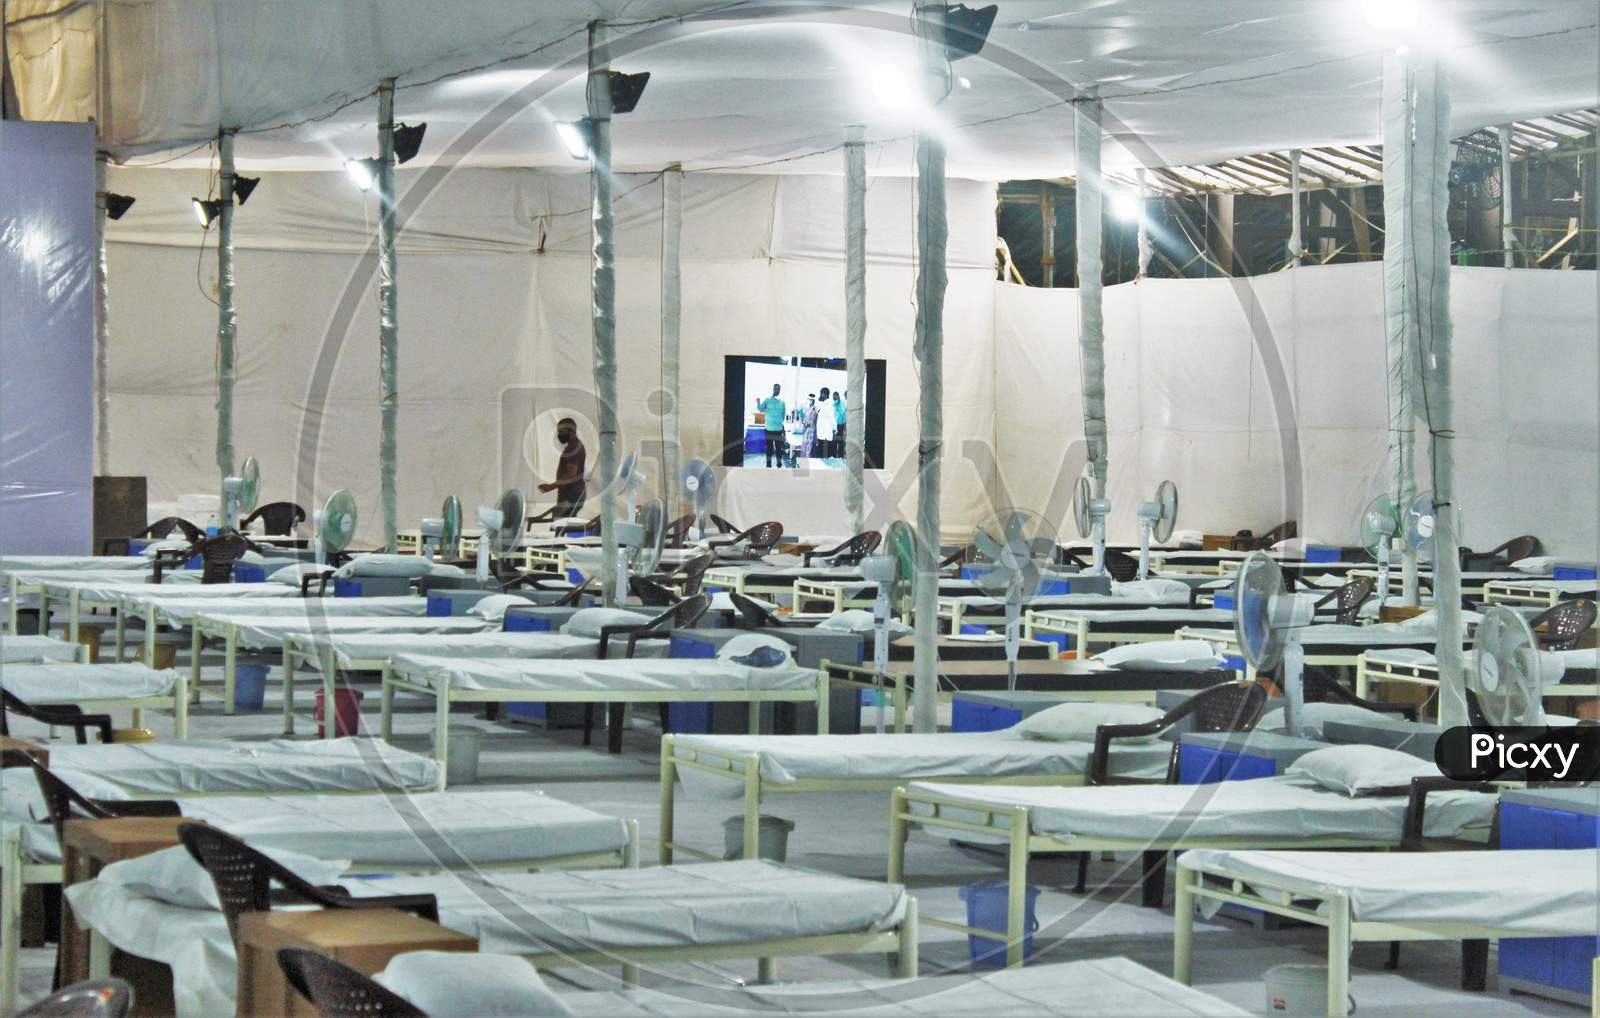 A Screen Is Put Up For The Entertainment Of The Covid-19 Patients At A Recently Constructed 1000 Beds Quarantine Facility, In Mumbai, India On June 22, 2020.